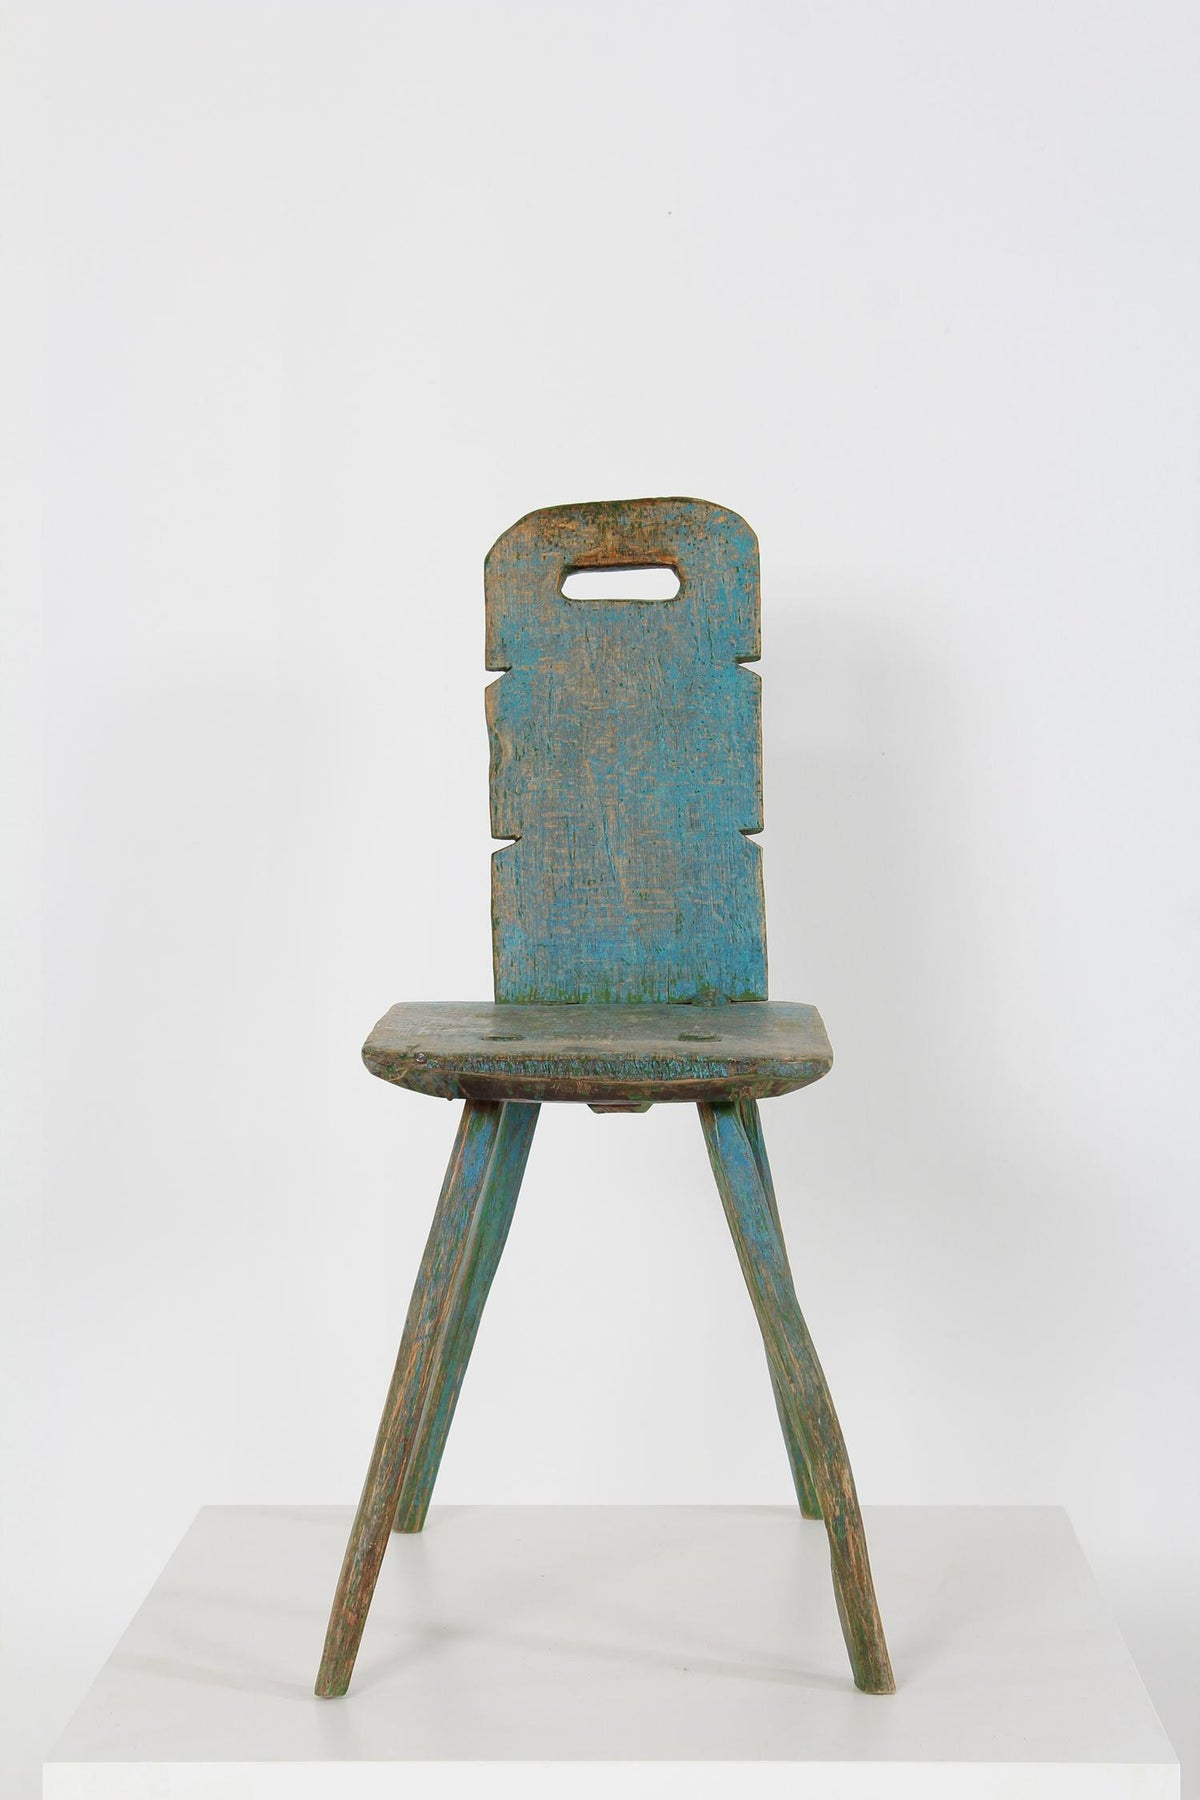 Primitive Swedish  Folk Art Stool In Original Powder Blue Paint